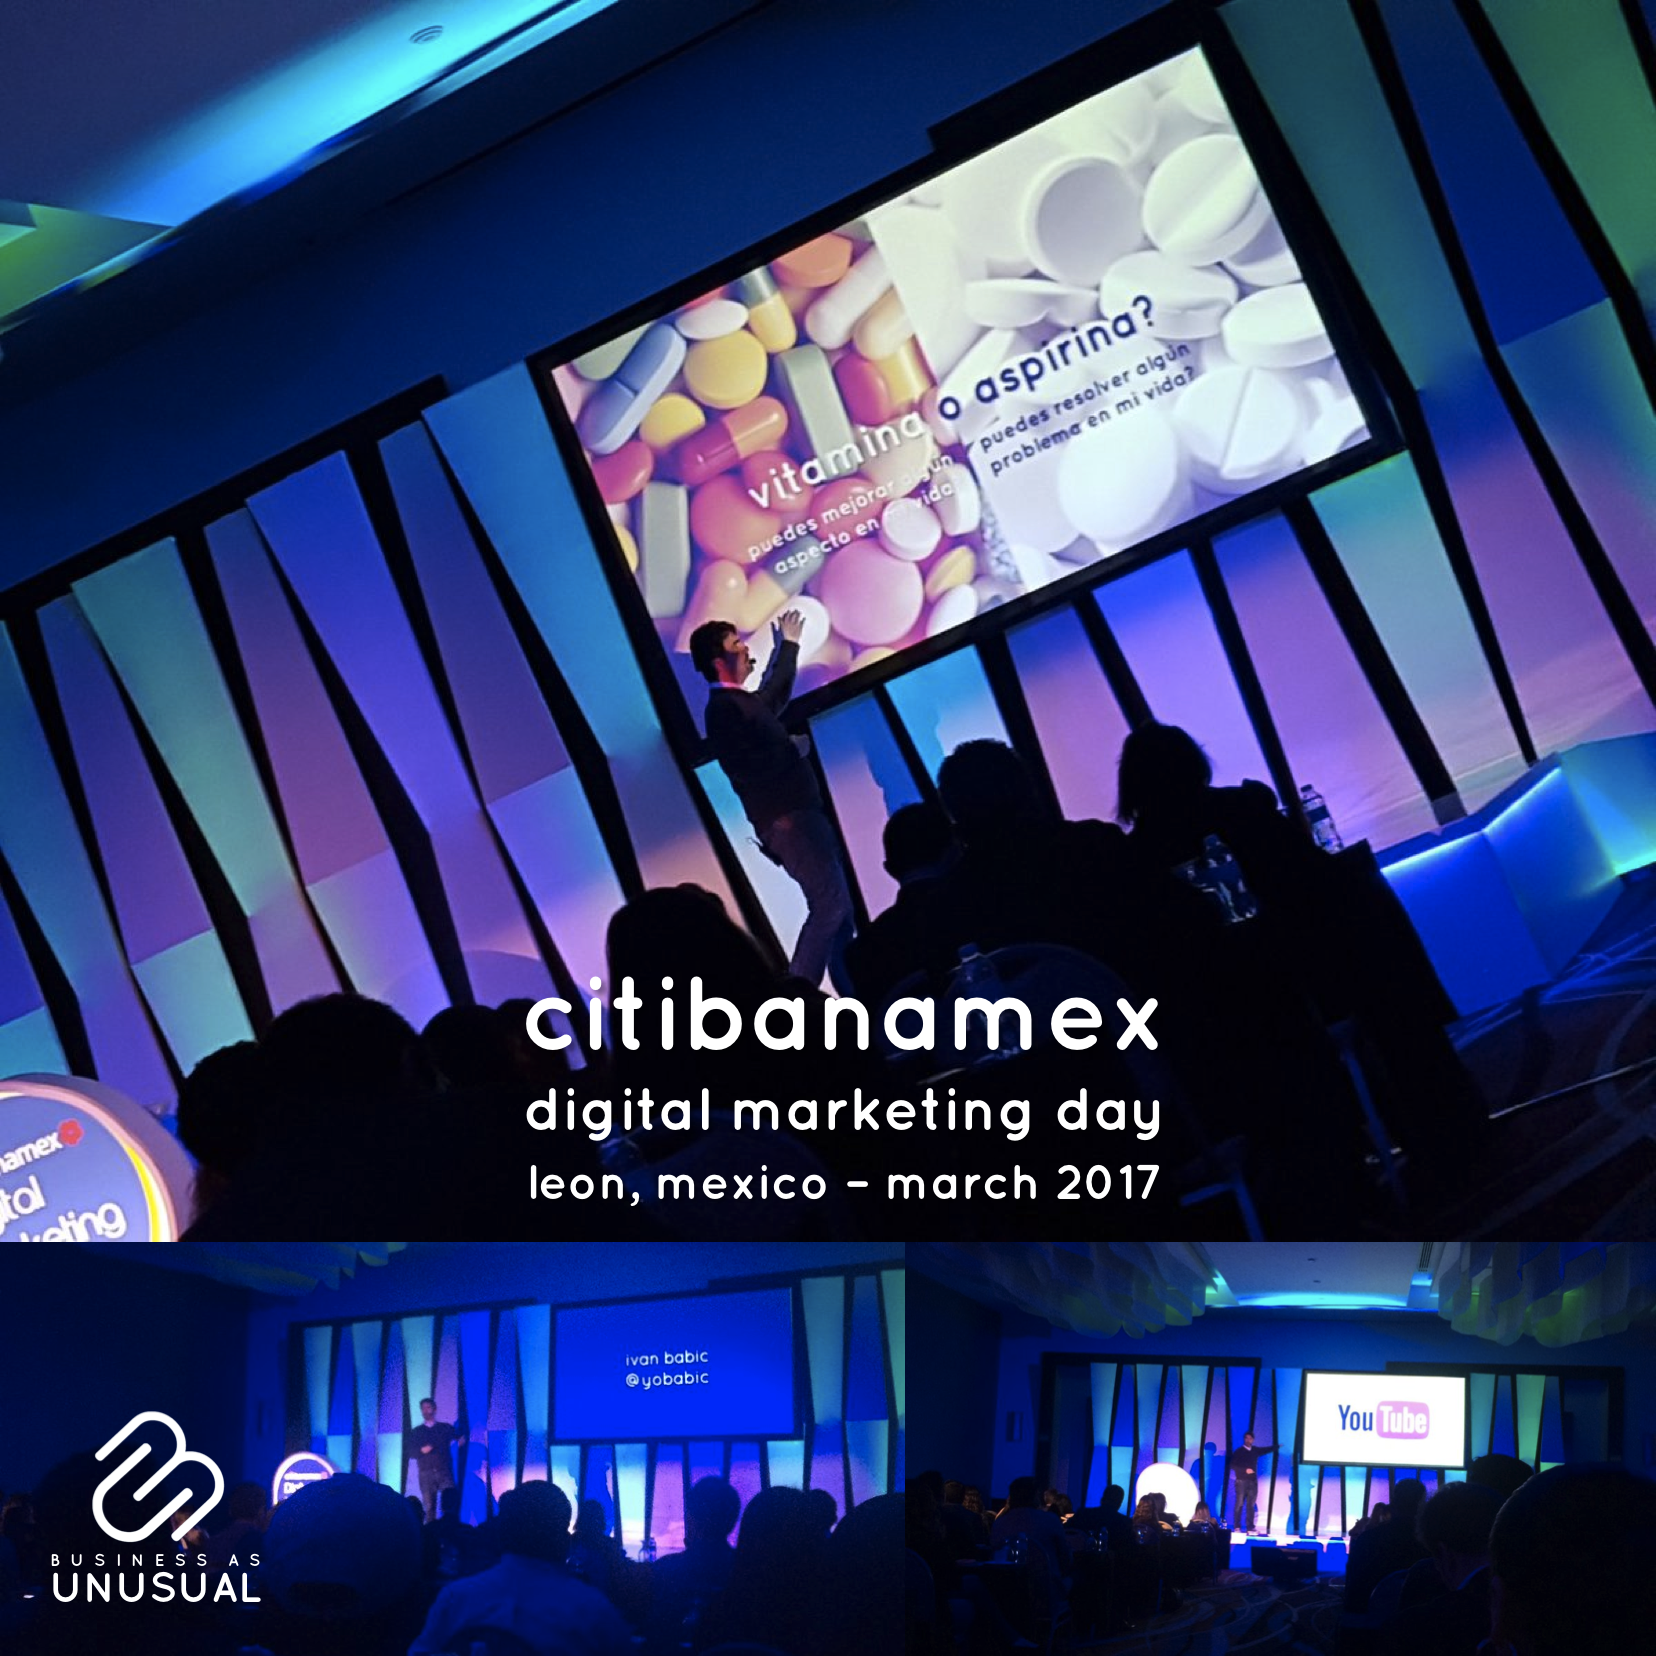 Citibanamex - Digital Marketing Day - León